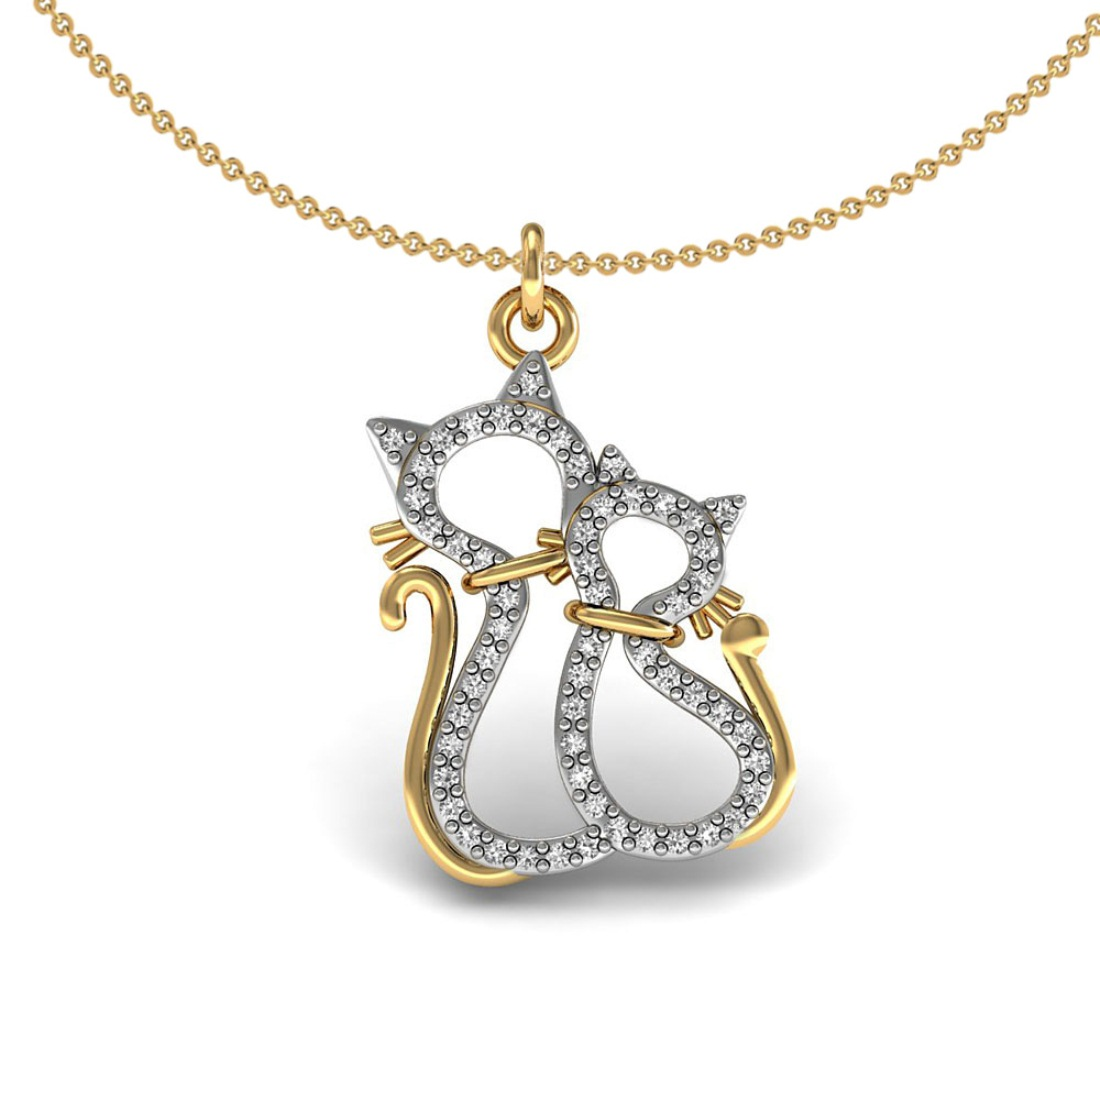 Two cat kids pendant set in 18k gold with diamond fine jewelry